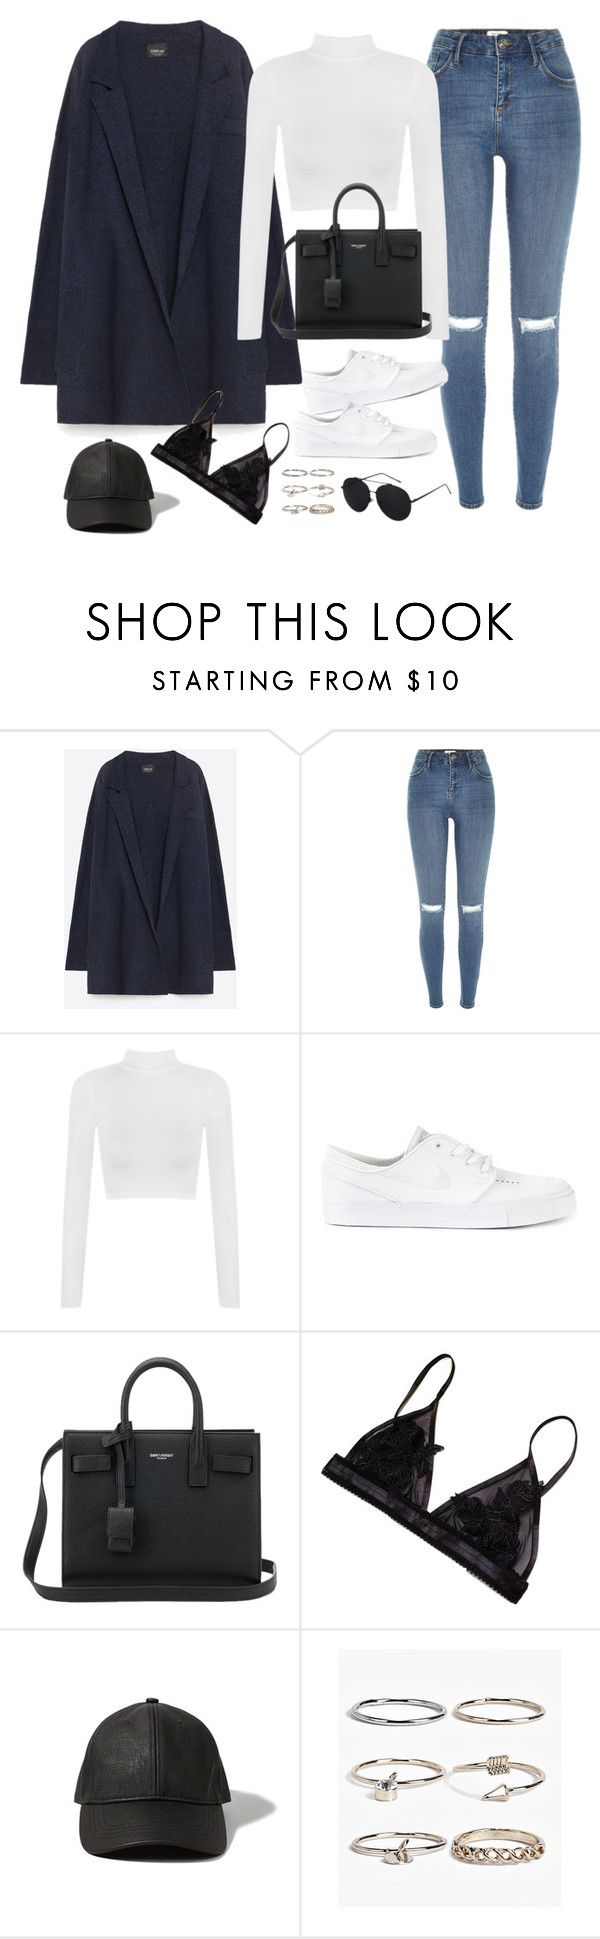 """Untitled#4568"" by fashionnfacts ❤ liked on Polyvore featuring Zara, River Island, WearAll, NIKE, Yves Saint Laurent, Abercrombie & Fitch and Boohoo"